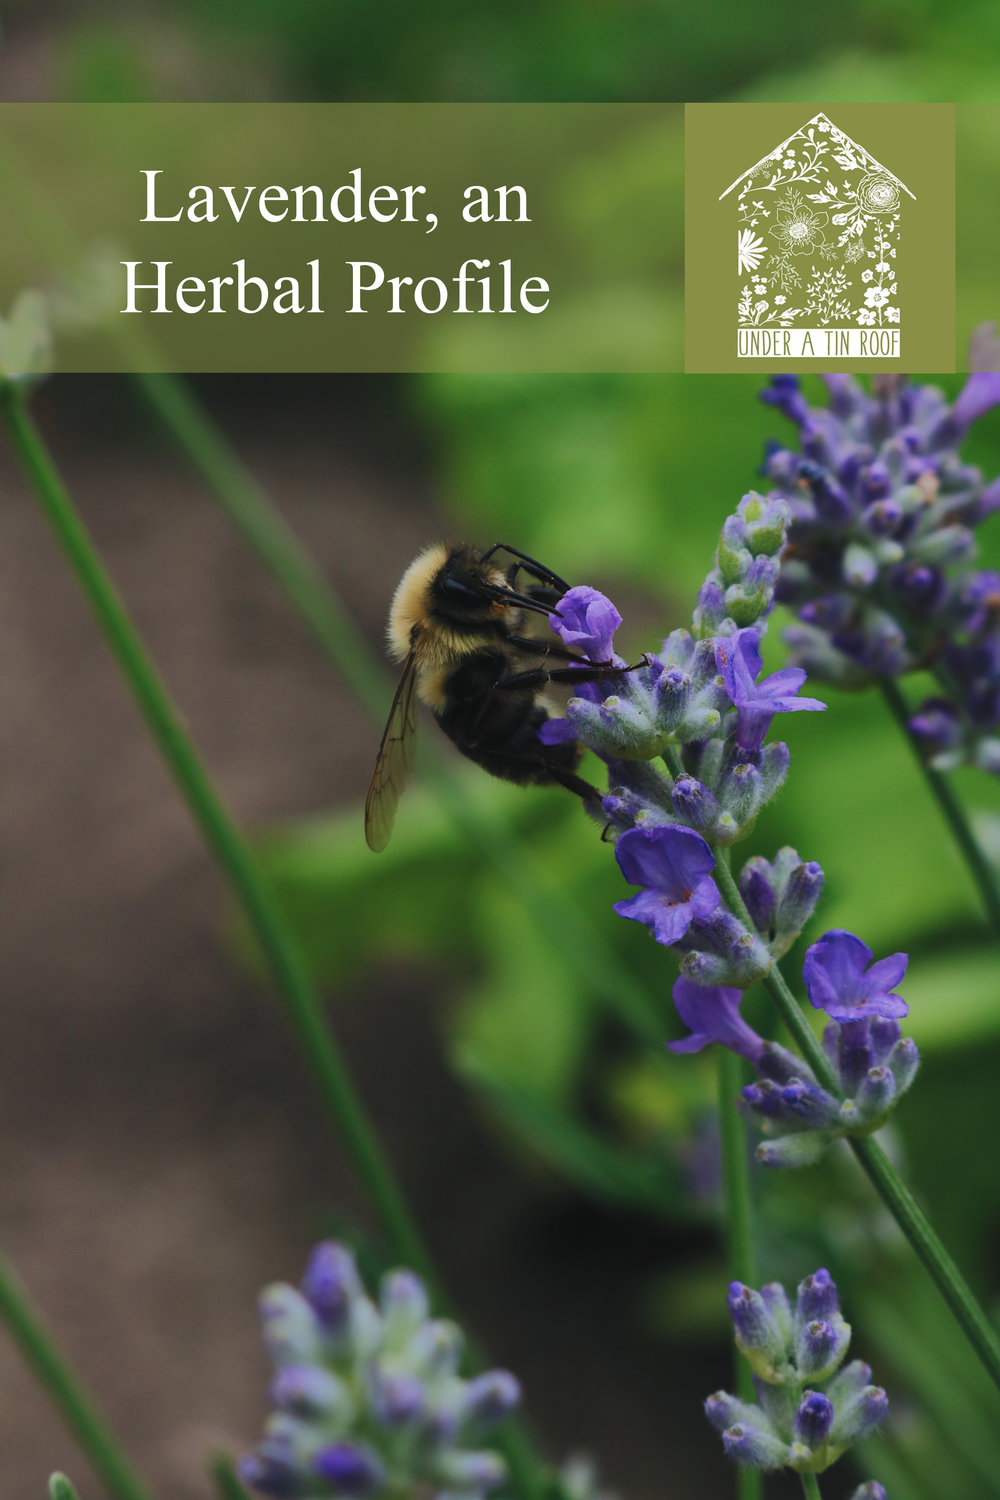 Lavender, an Herbal Profile - Under A Tin Roof Blog